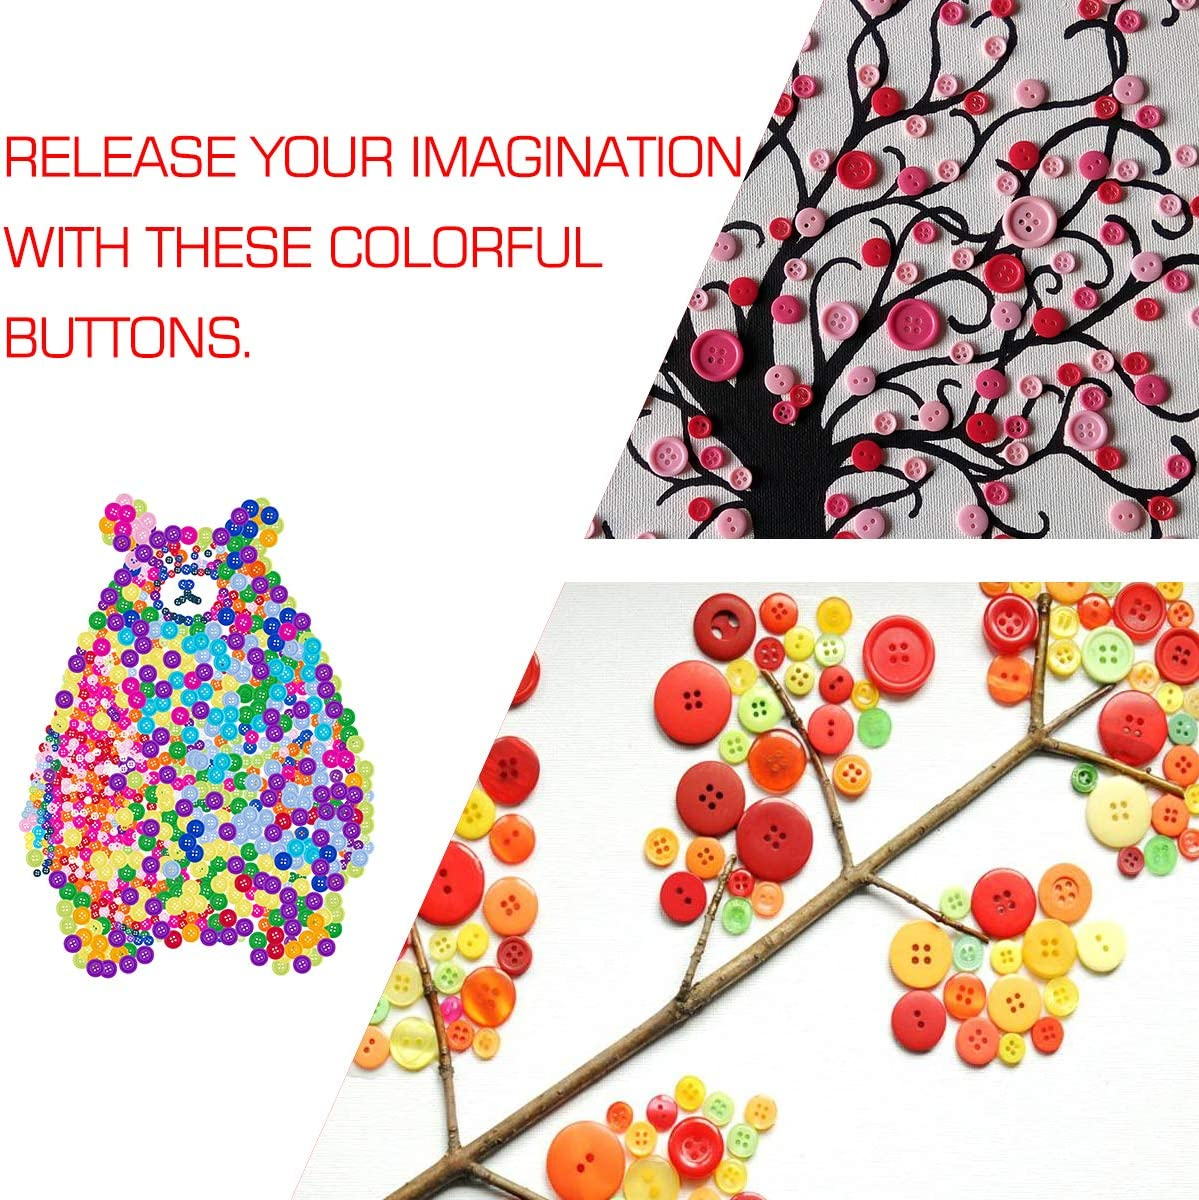 Biubee 1100 Pcs Assorted Size Mixed Color Resin Buttons DIY Handmade Decorations 4 Holes Round Craft Buttons for Sewing Scrapbooking